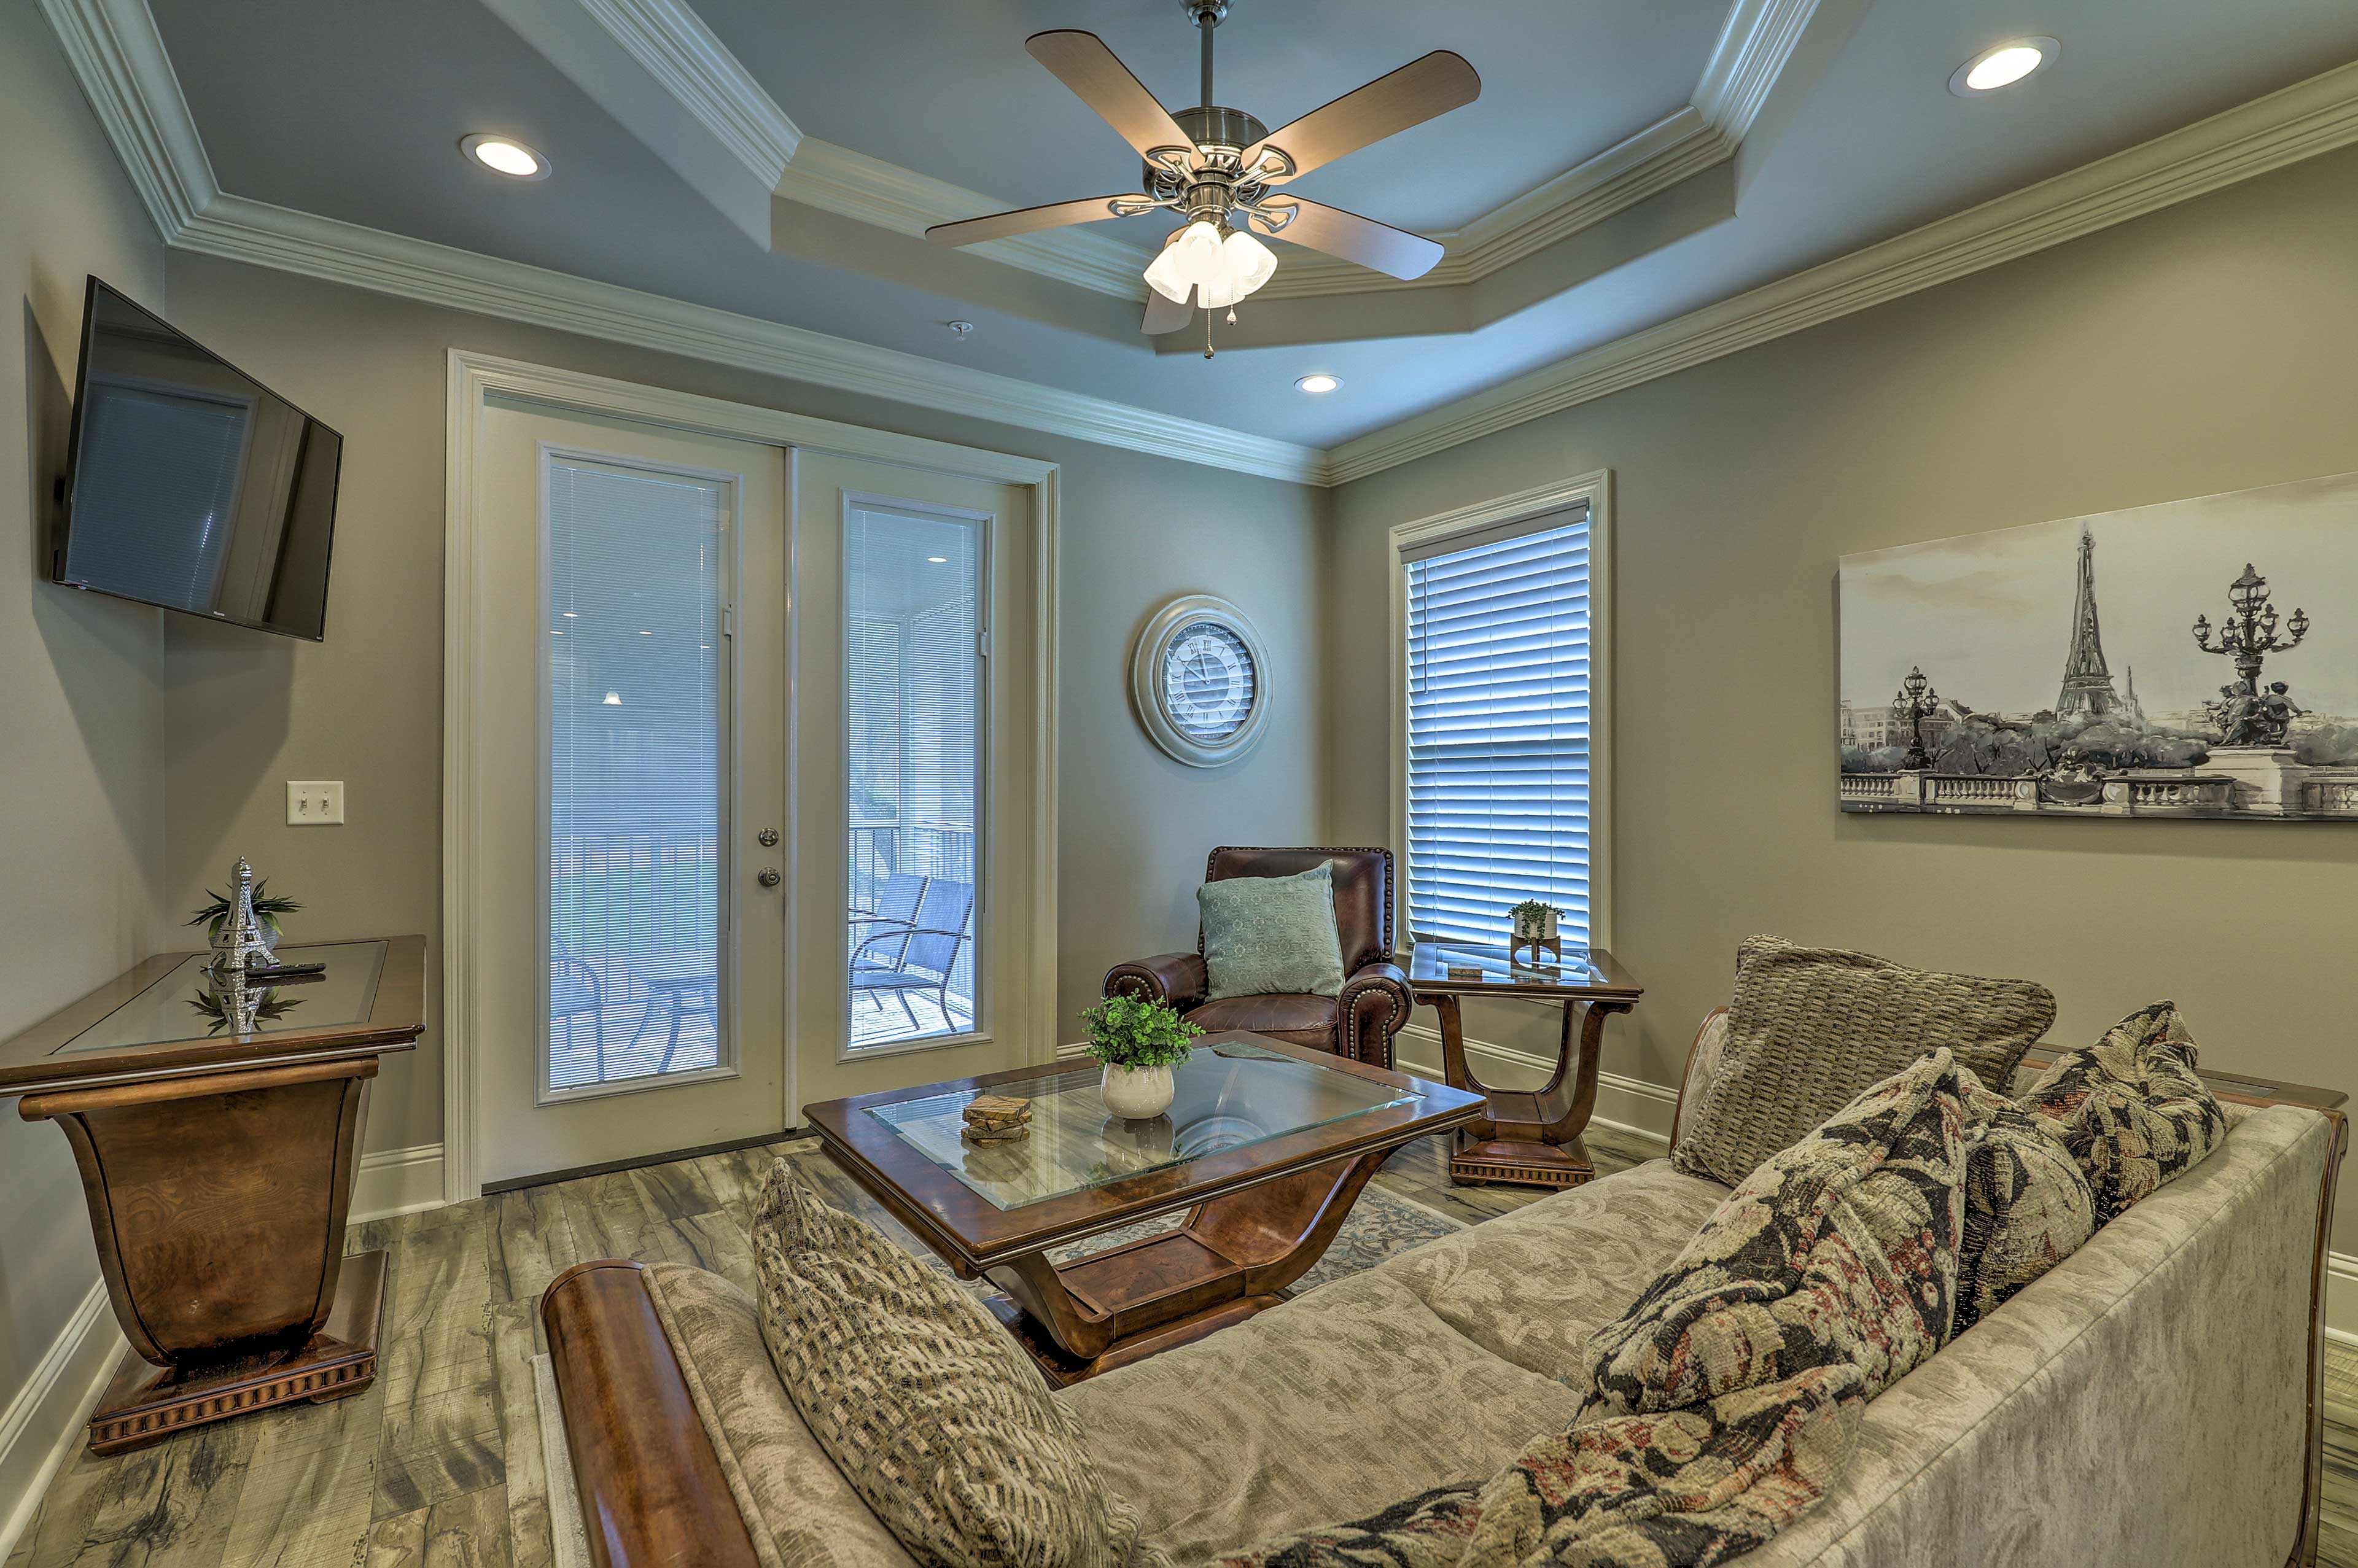 The living room features comfortable furnishings.